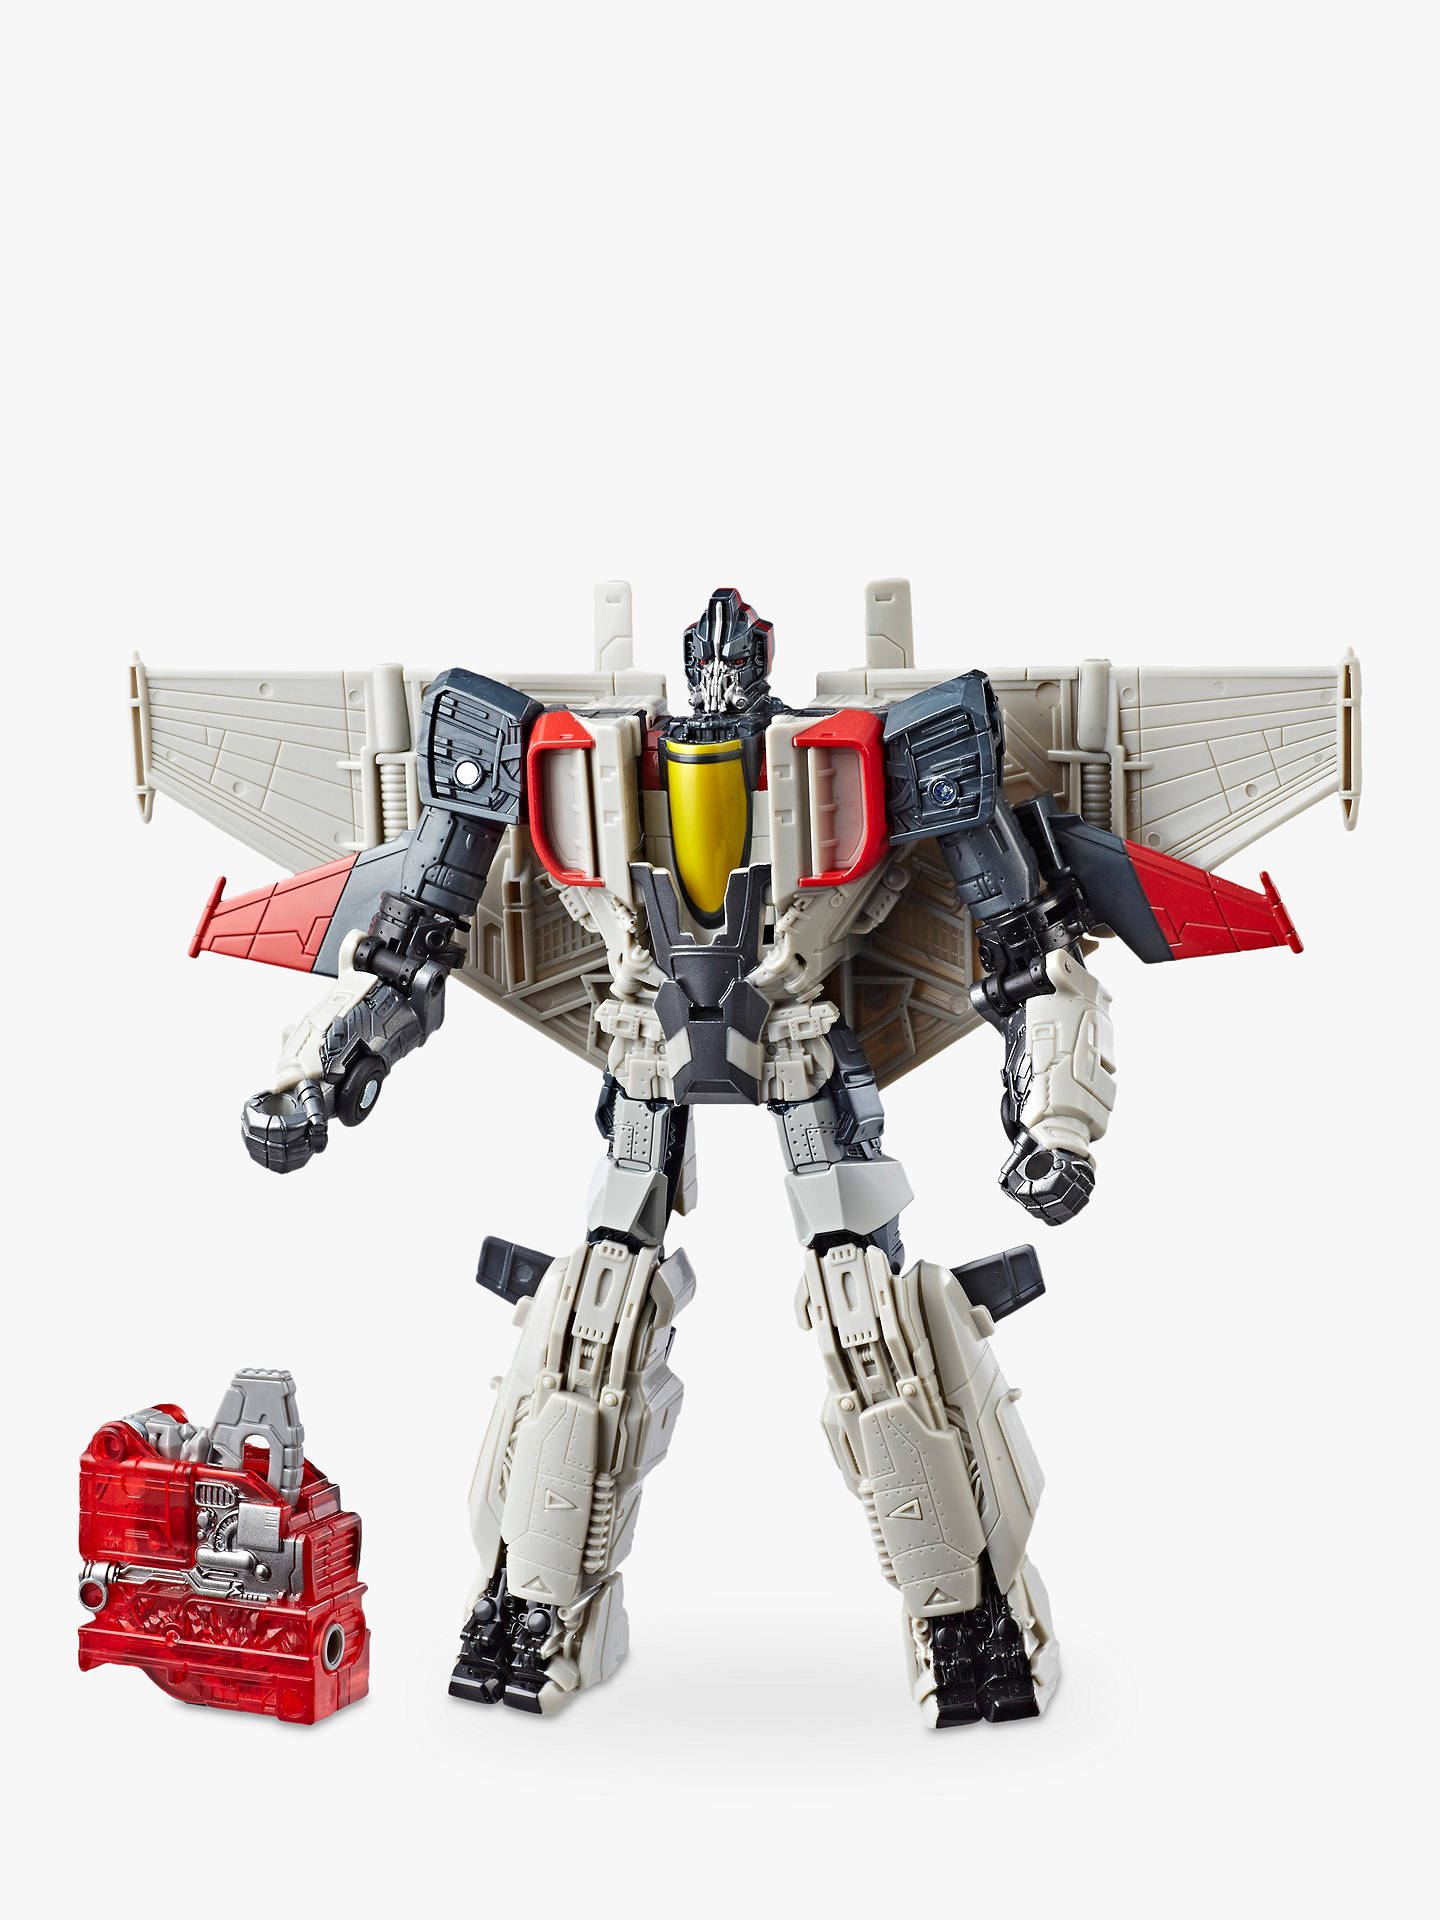 a9f34f3974 Buy Transformers Bumblebee Energon Igniters Nitro Series Blitzwing Action  Figure Online at johnlewis.com ...